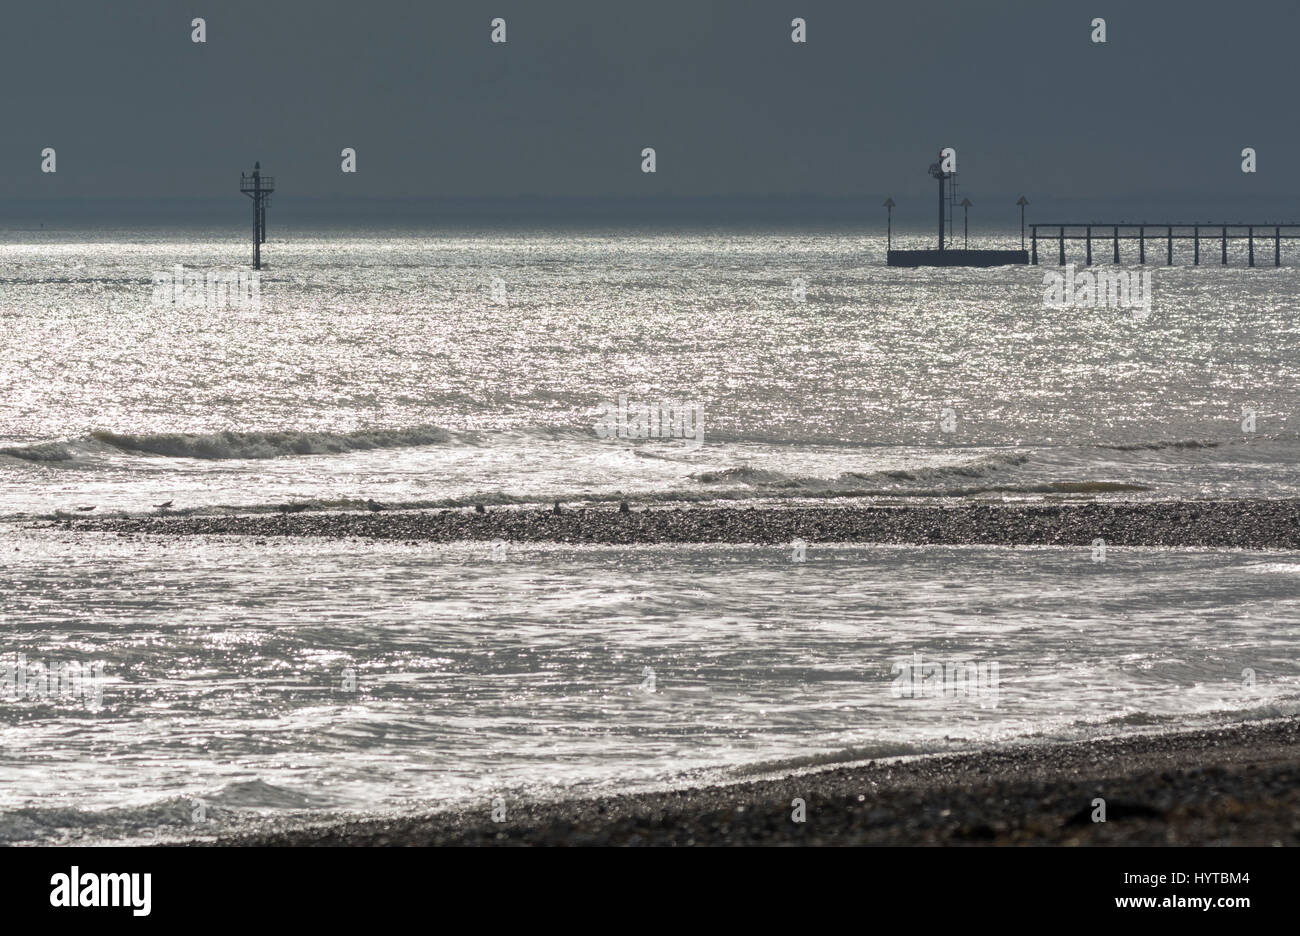 Sea glistening with reflections from the sun, looking out to dark stormy skies. - Stock Image